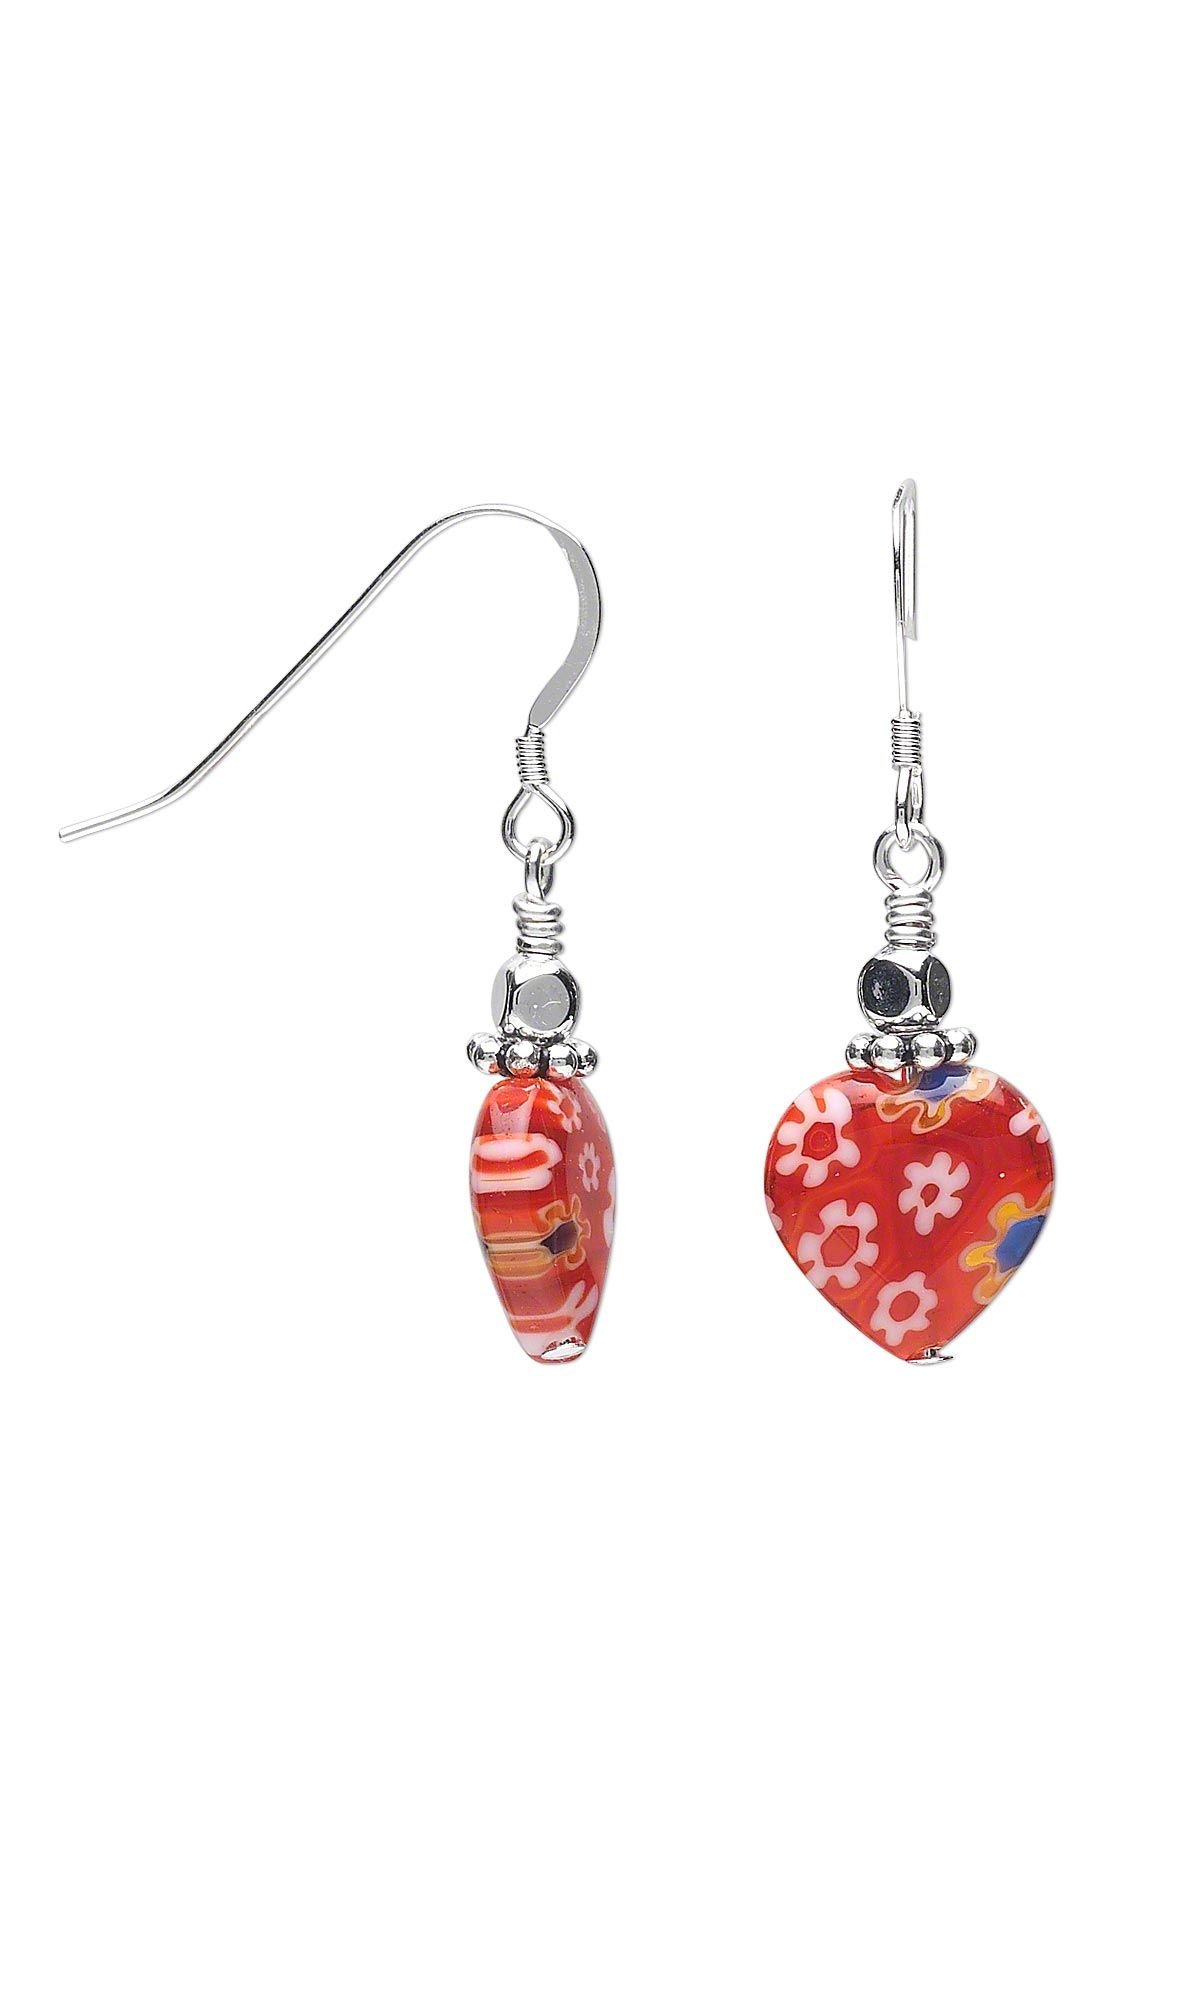 jewelry design earrings with millefiori glass beads and sterling